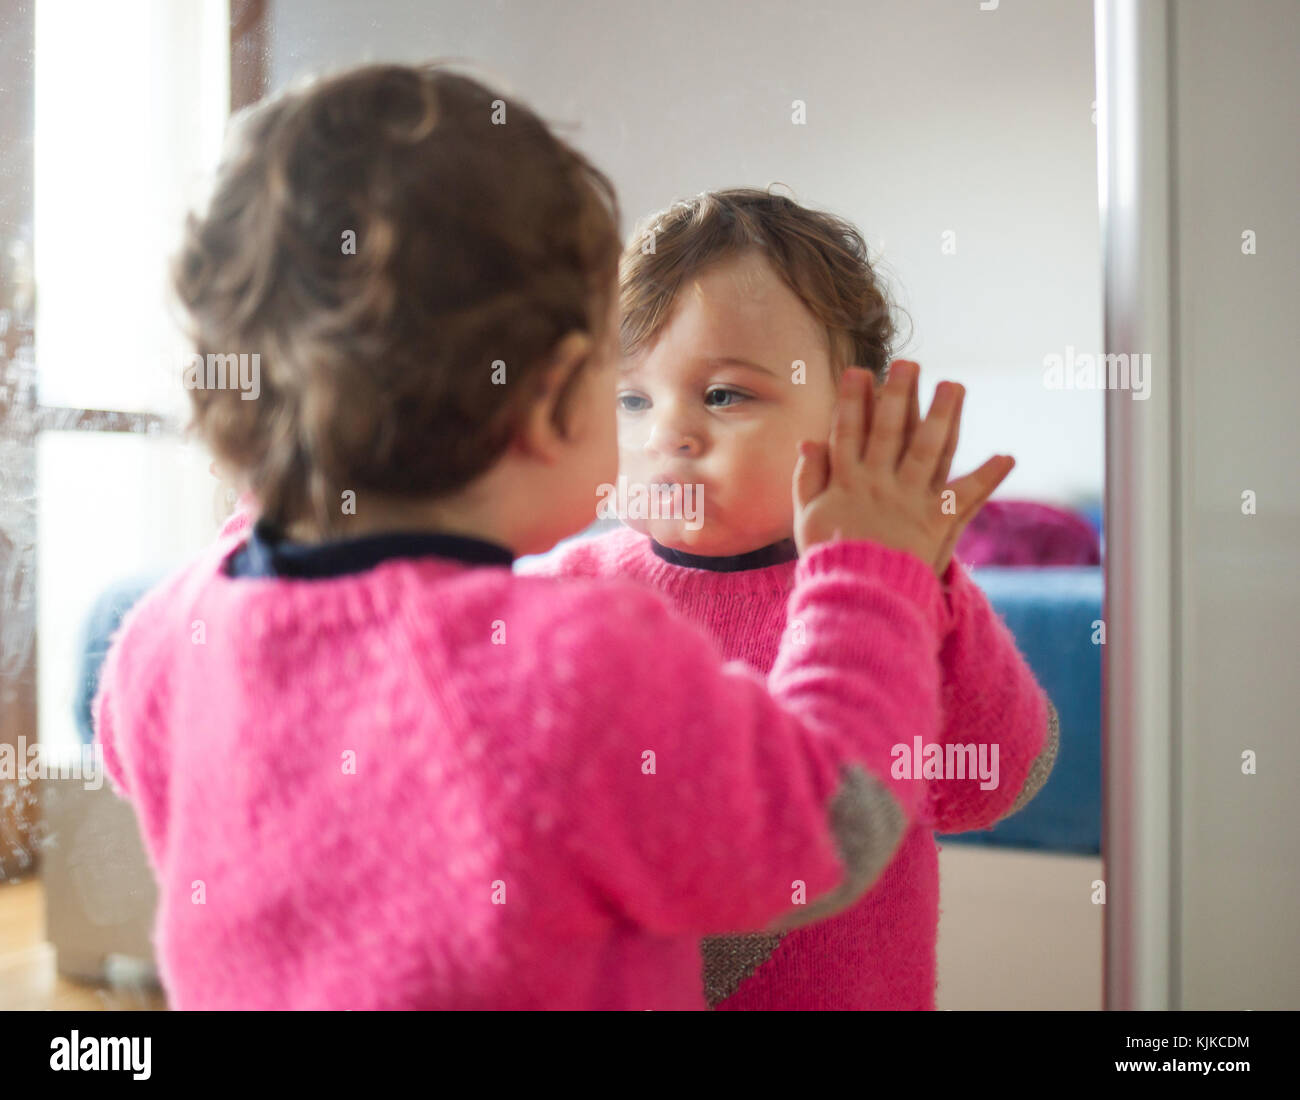 Toddler baby girl playing with mirror in the bedroom. - Stock Image